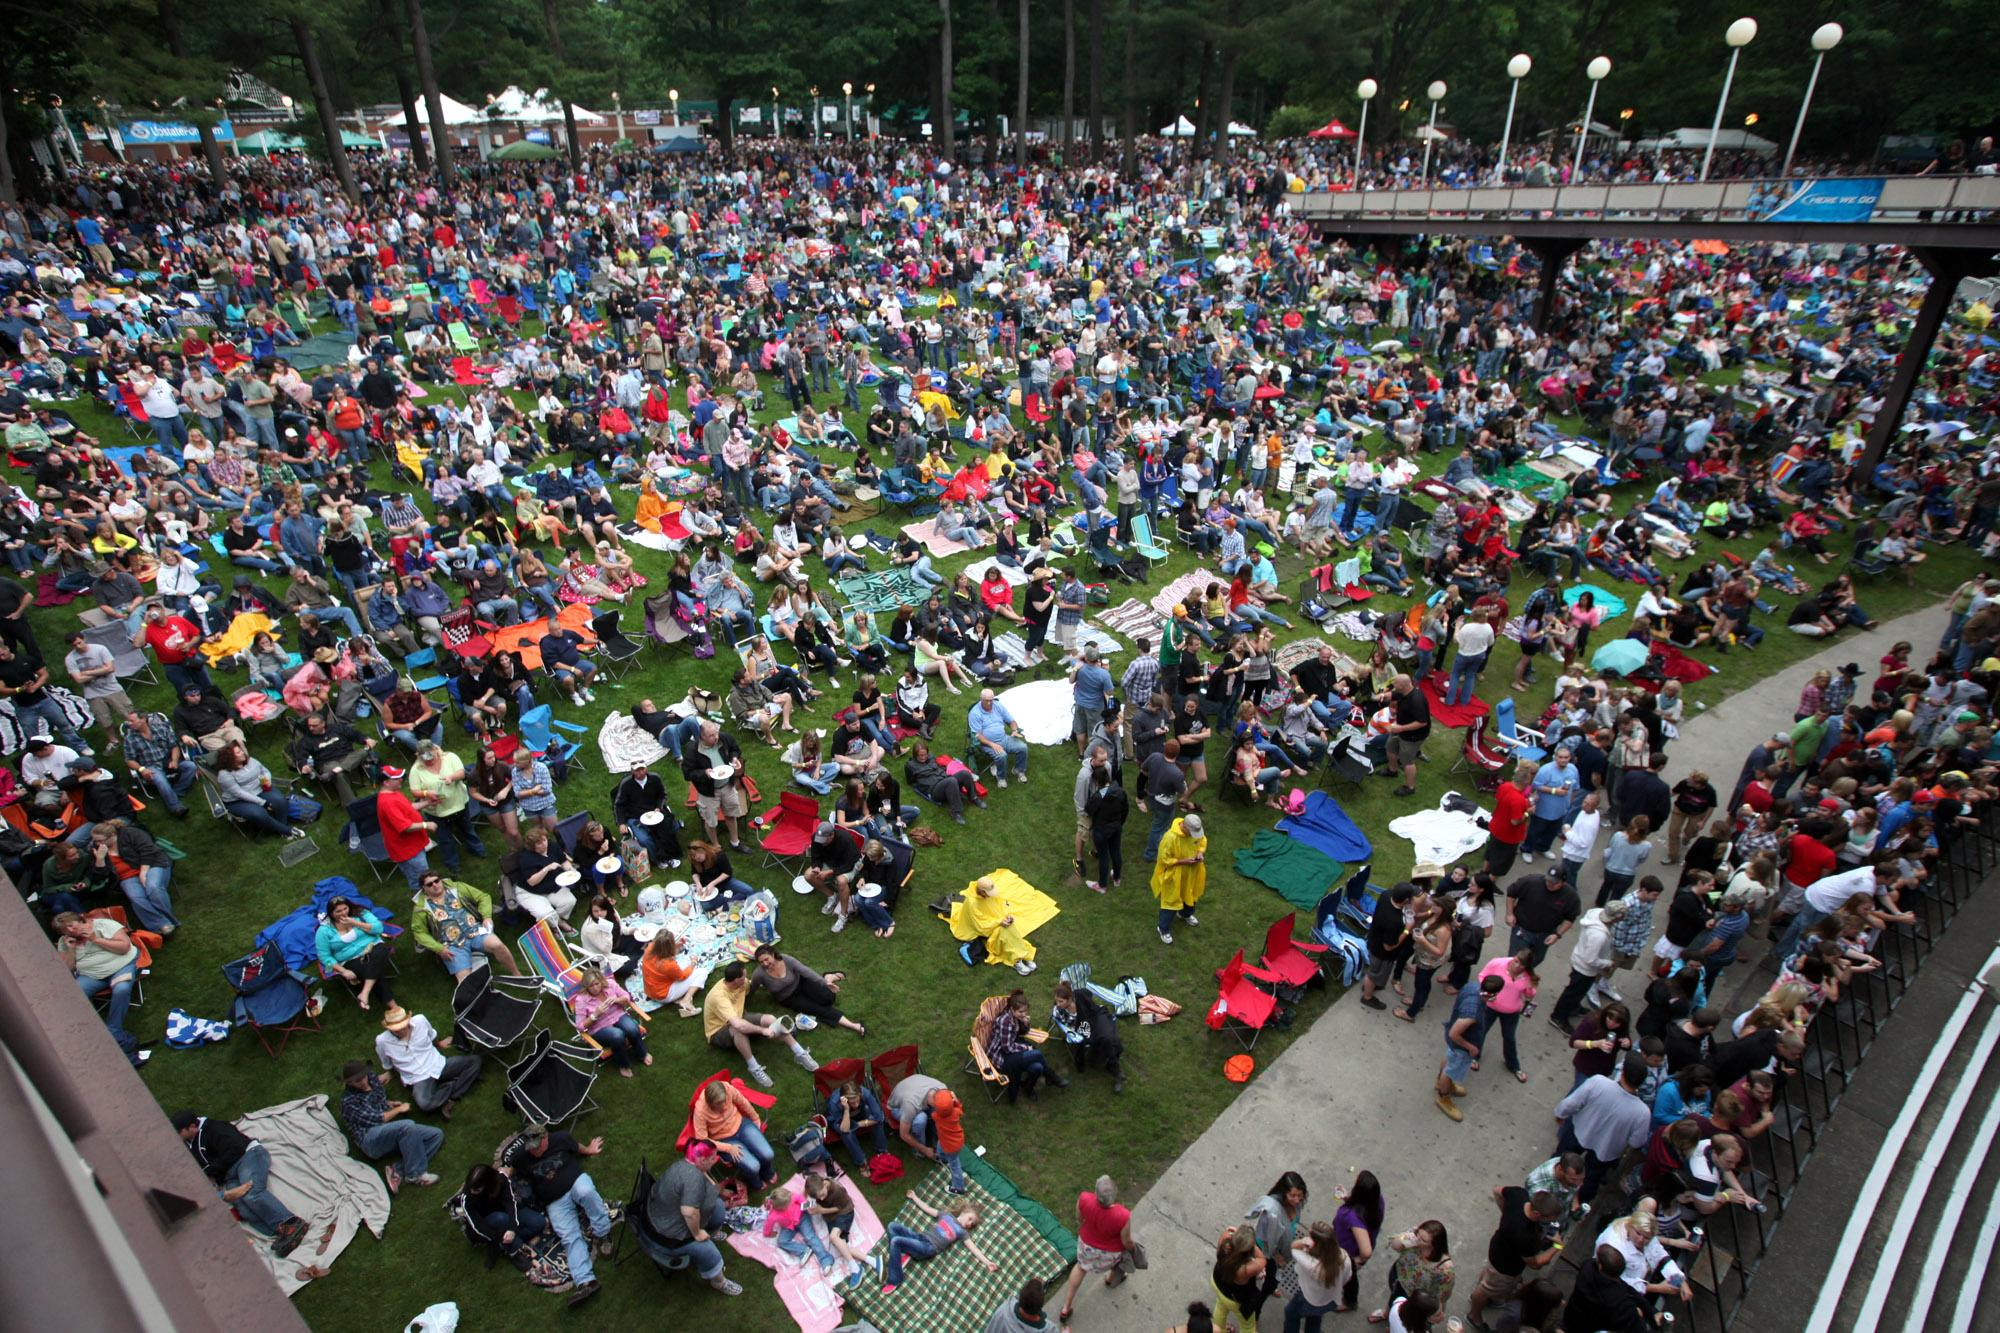 Here's SPAC's Summer Concert Lineup So Far (And What I Think Of It)